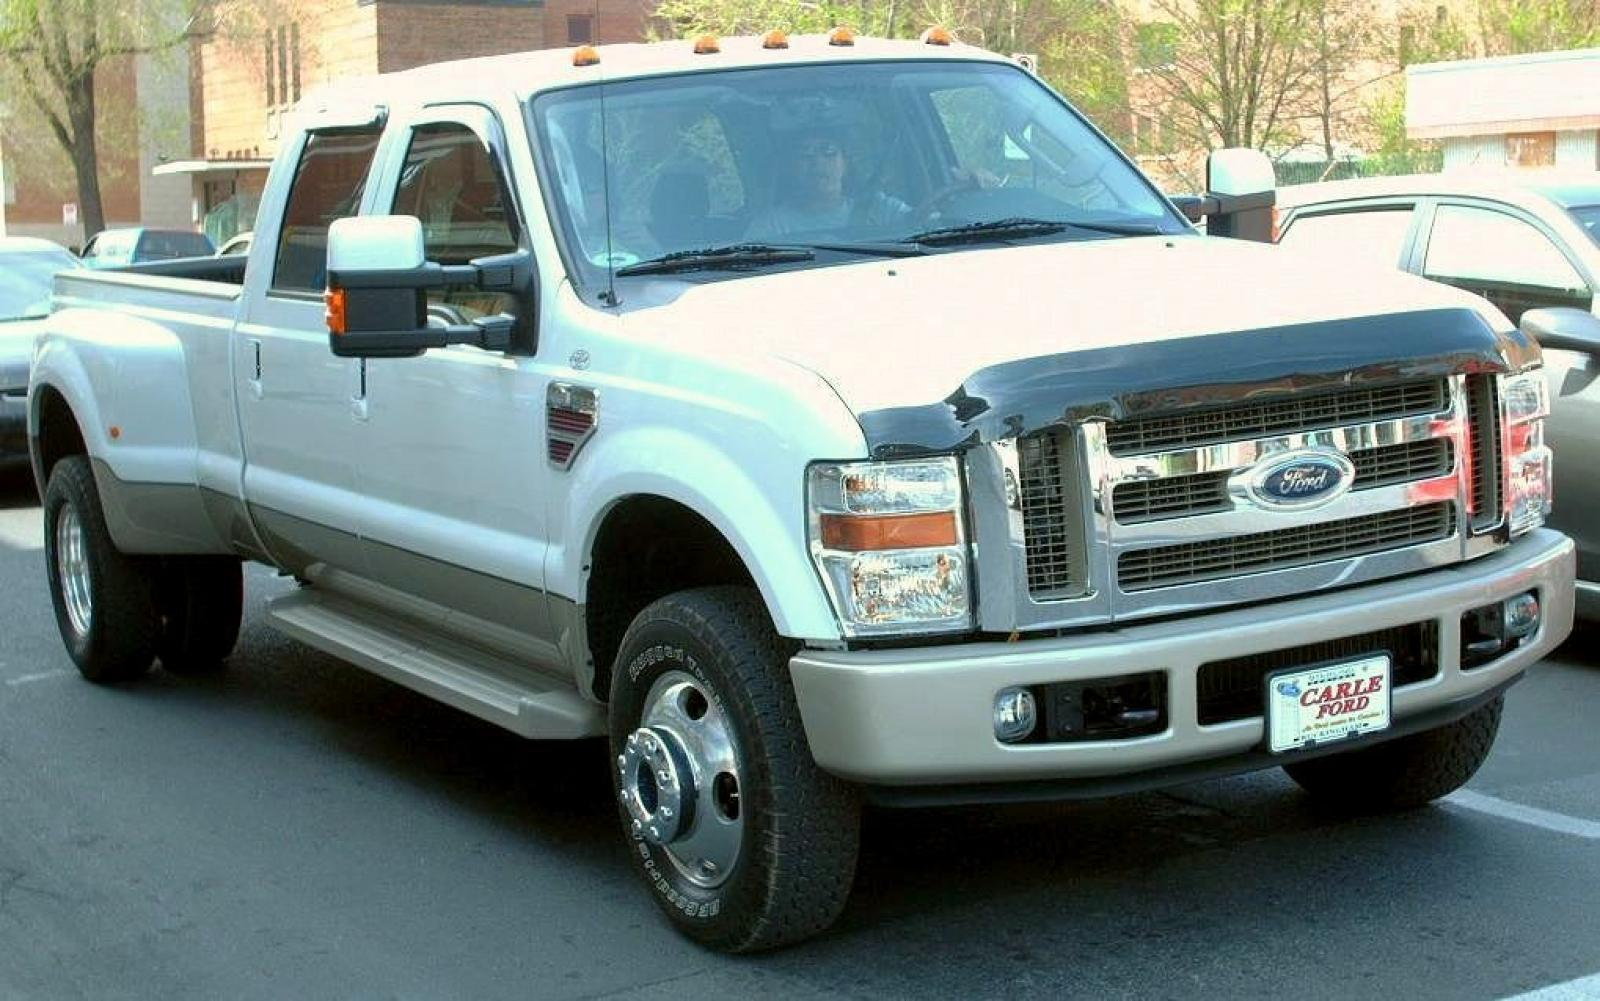 2008 Ford F-350 Super Duty - Information And Photos